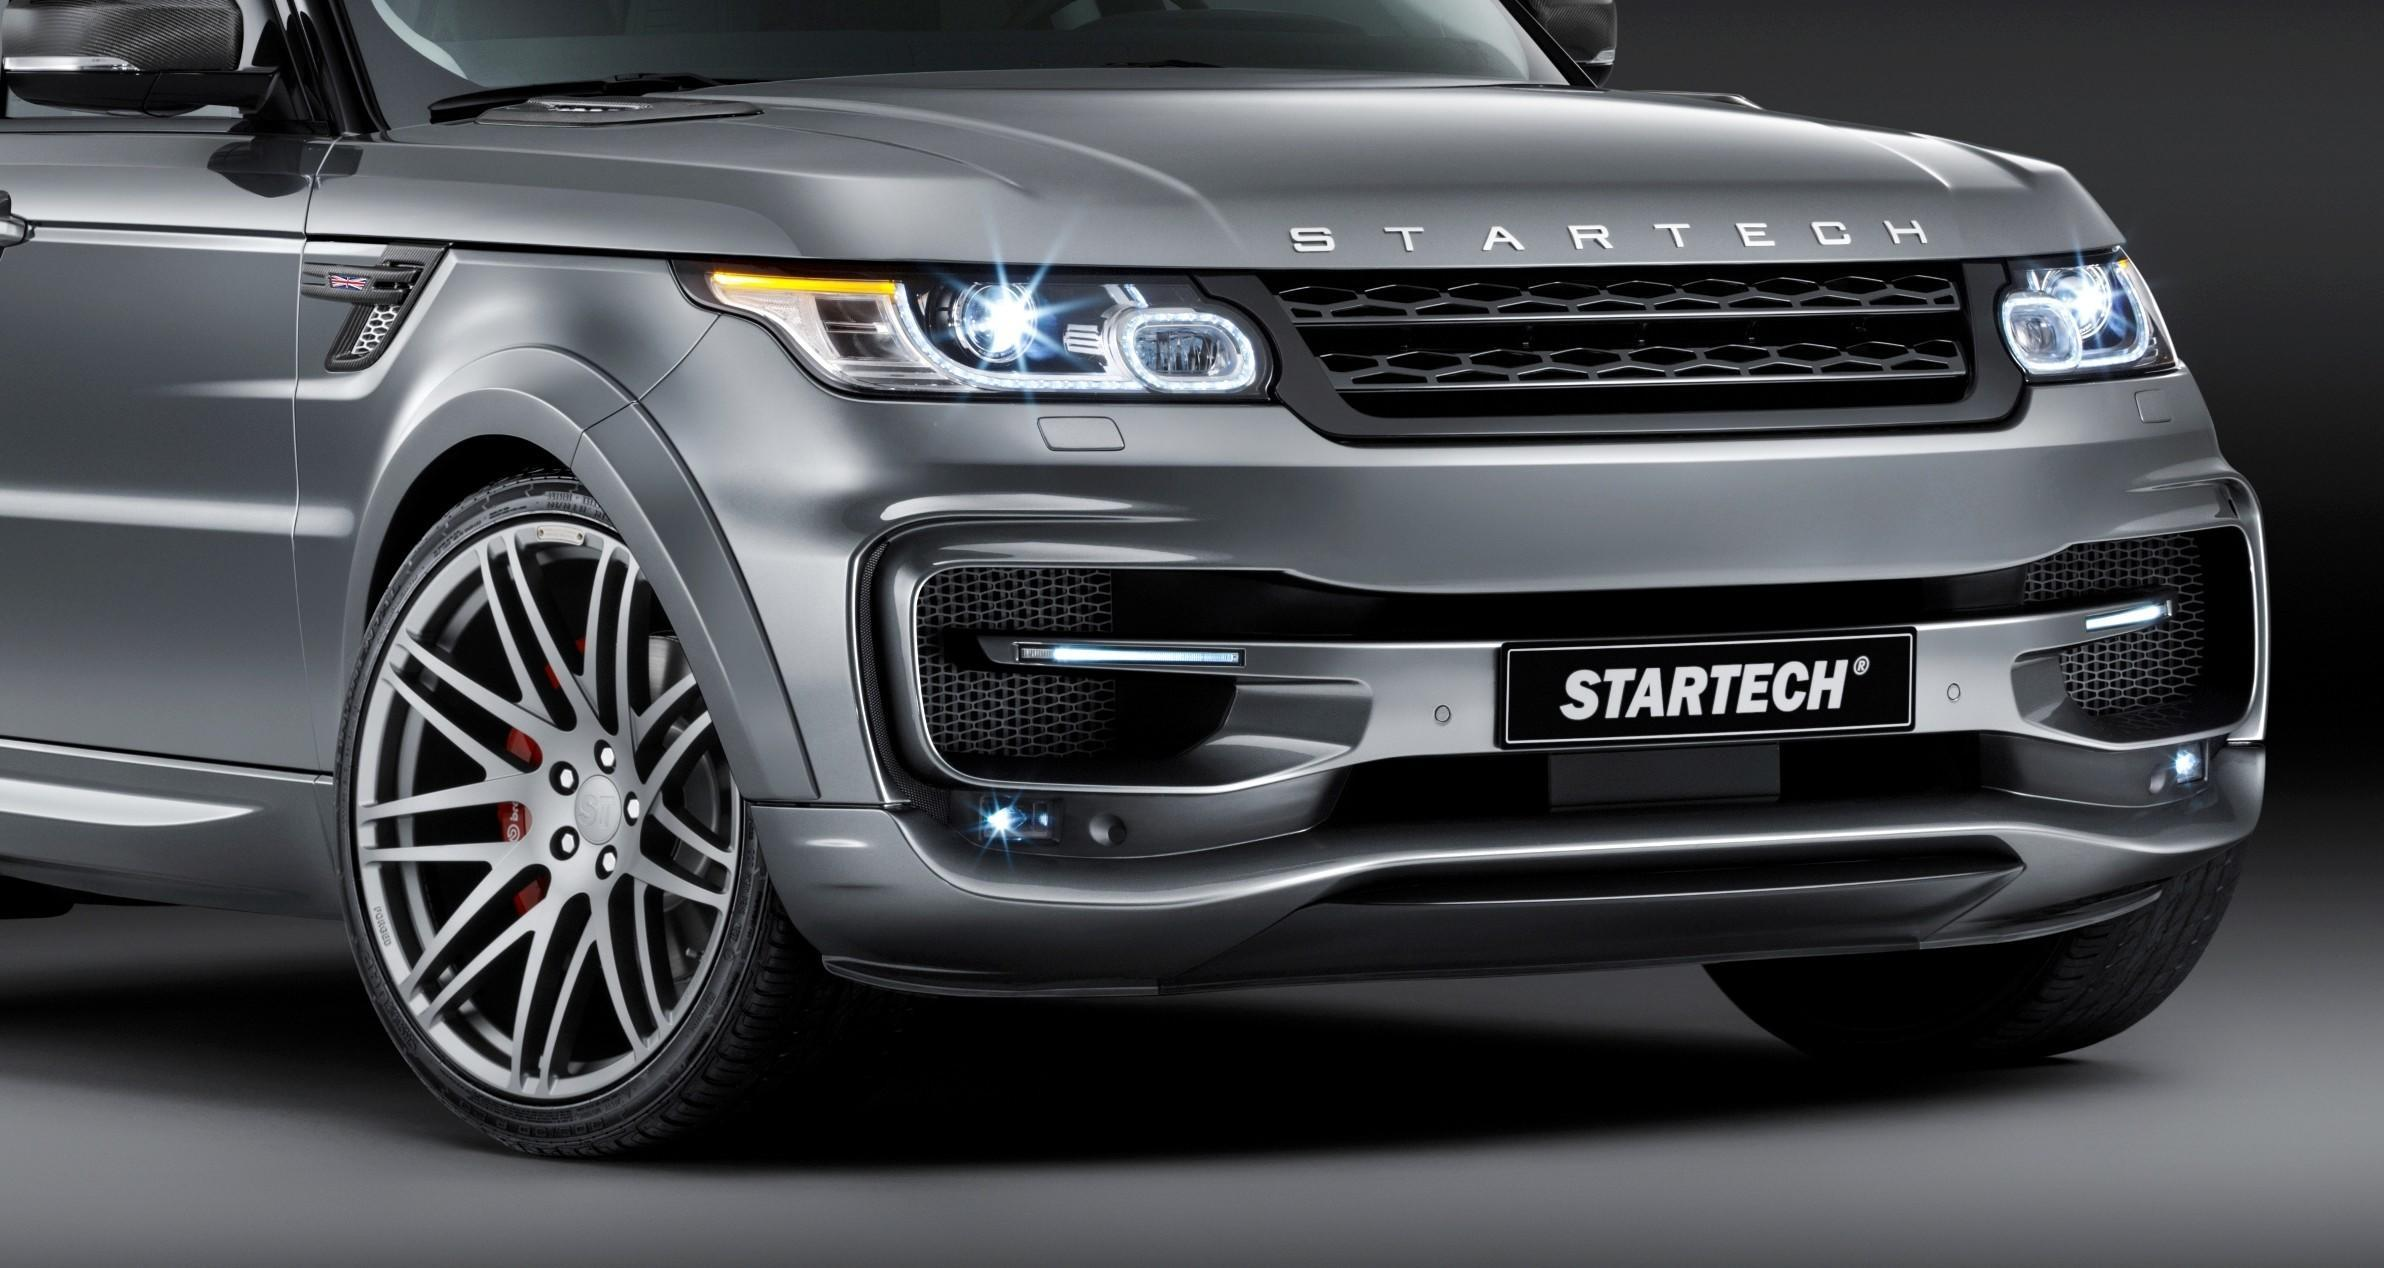 2014 Range Rover Sport STARTECH Widebody on 23 Inch Wheels Looks